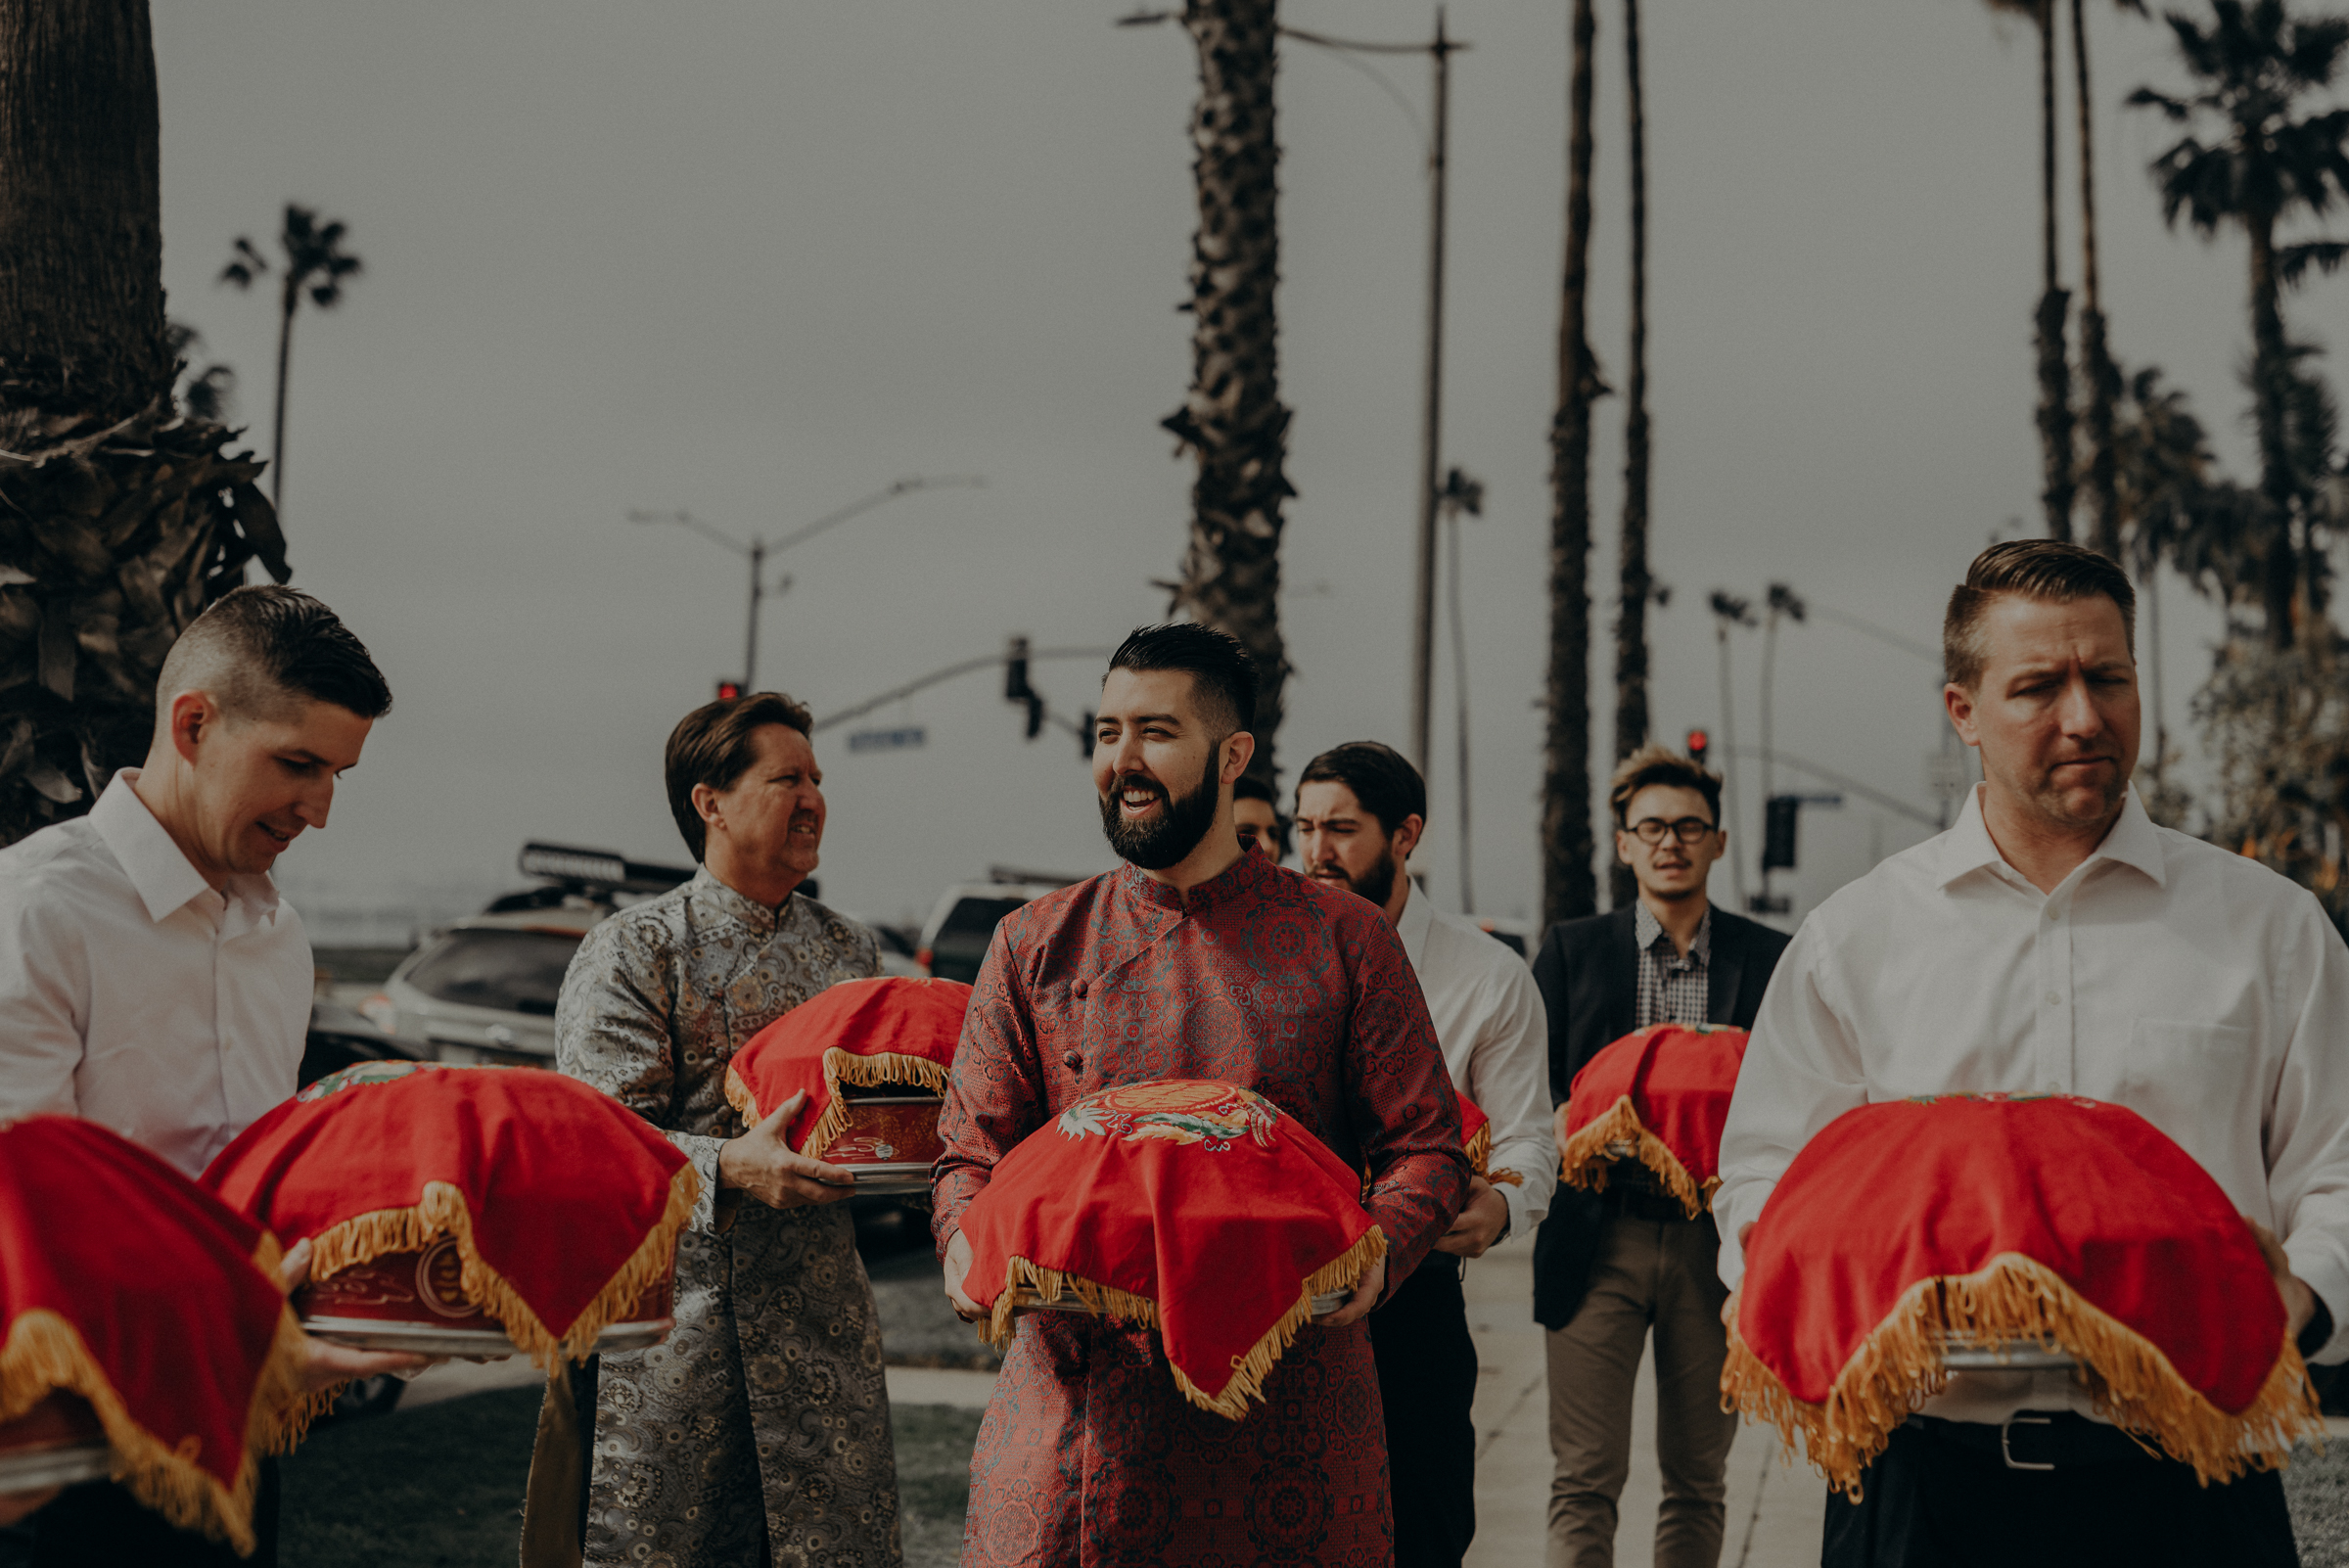 Los Angeles Wedding Photographer - IsaiahAndTaylor.com - The Ebell of Long Beach Wedding - Traditional Vietnamese tea ceremony-045.jpg